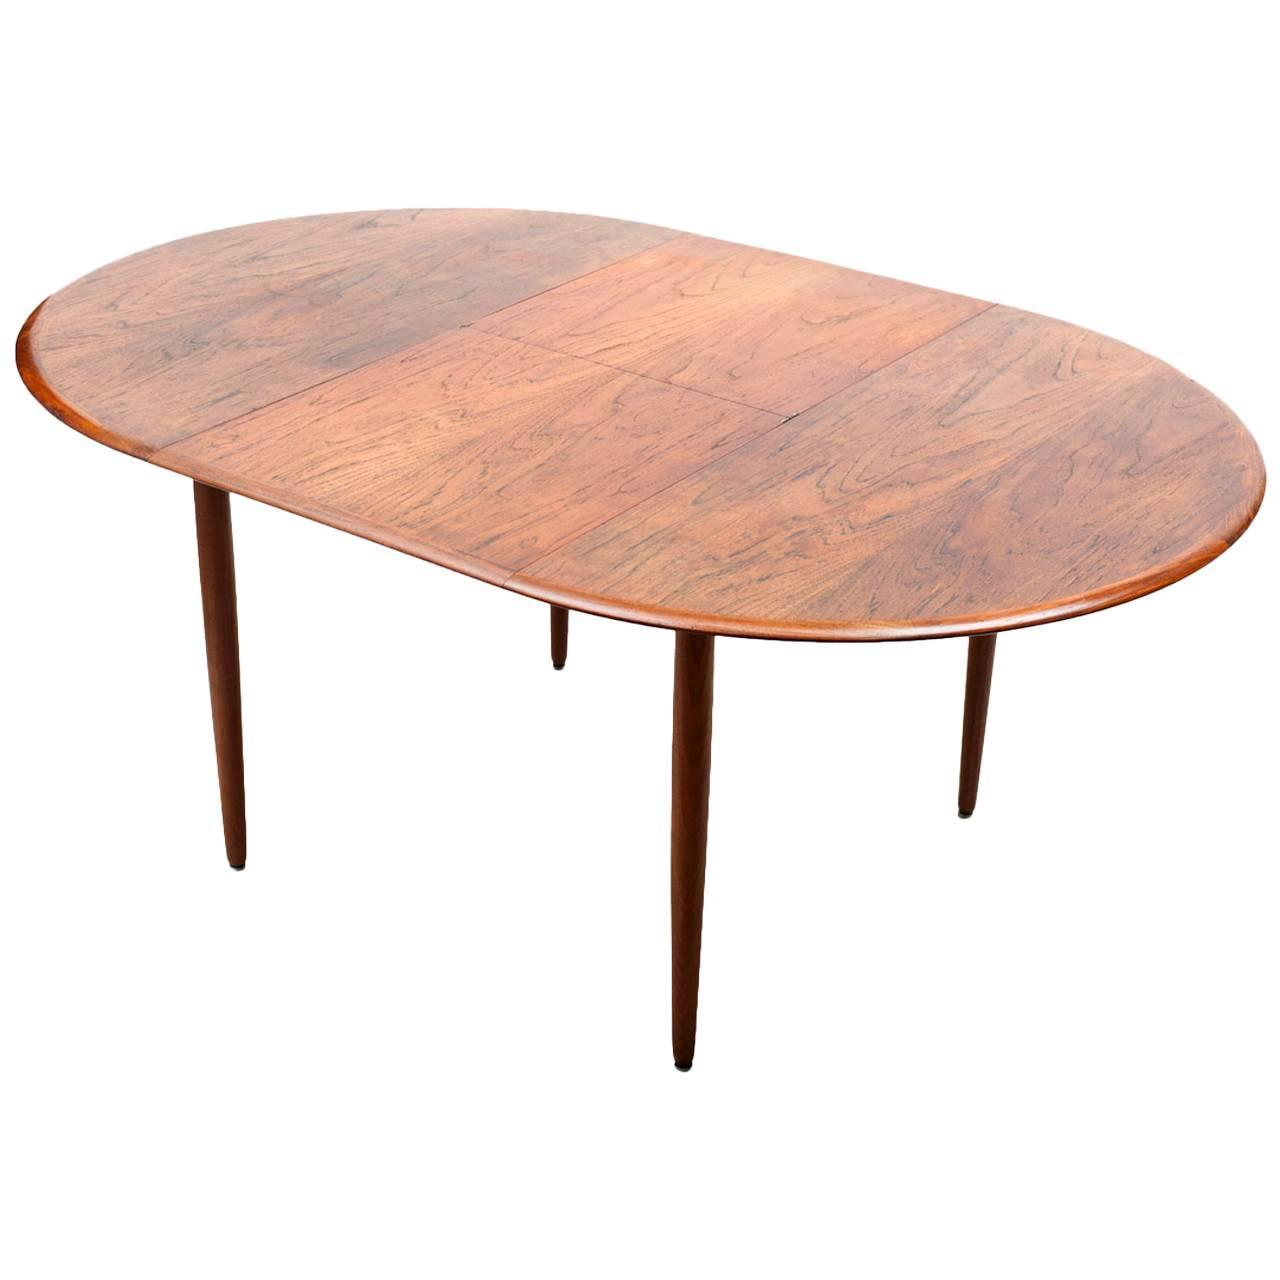 Scandinavian extensible dining table 1960s at 1stdibs for Table extensible 160